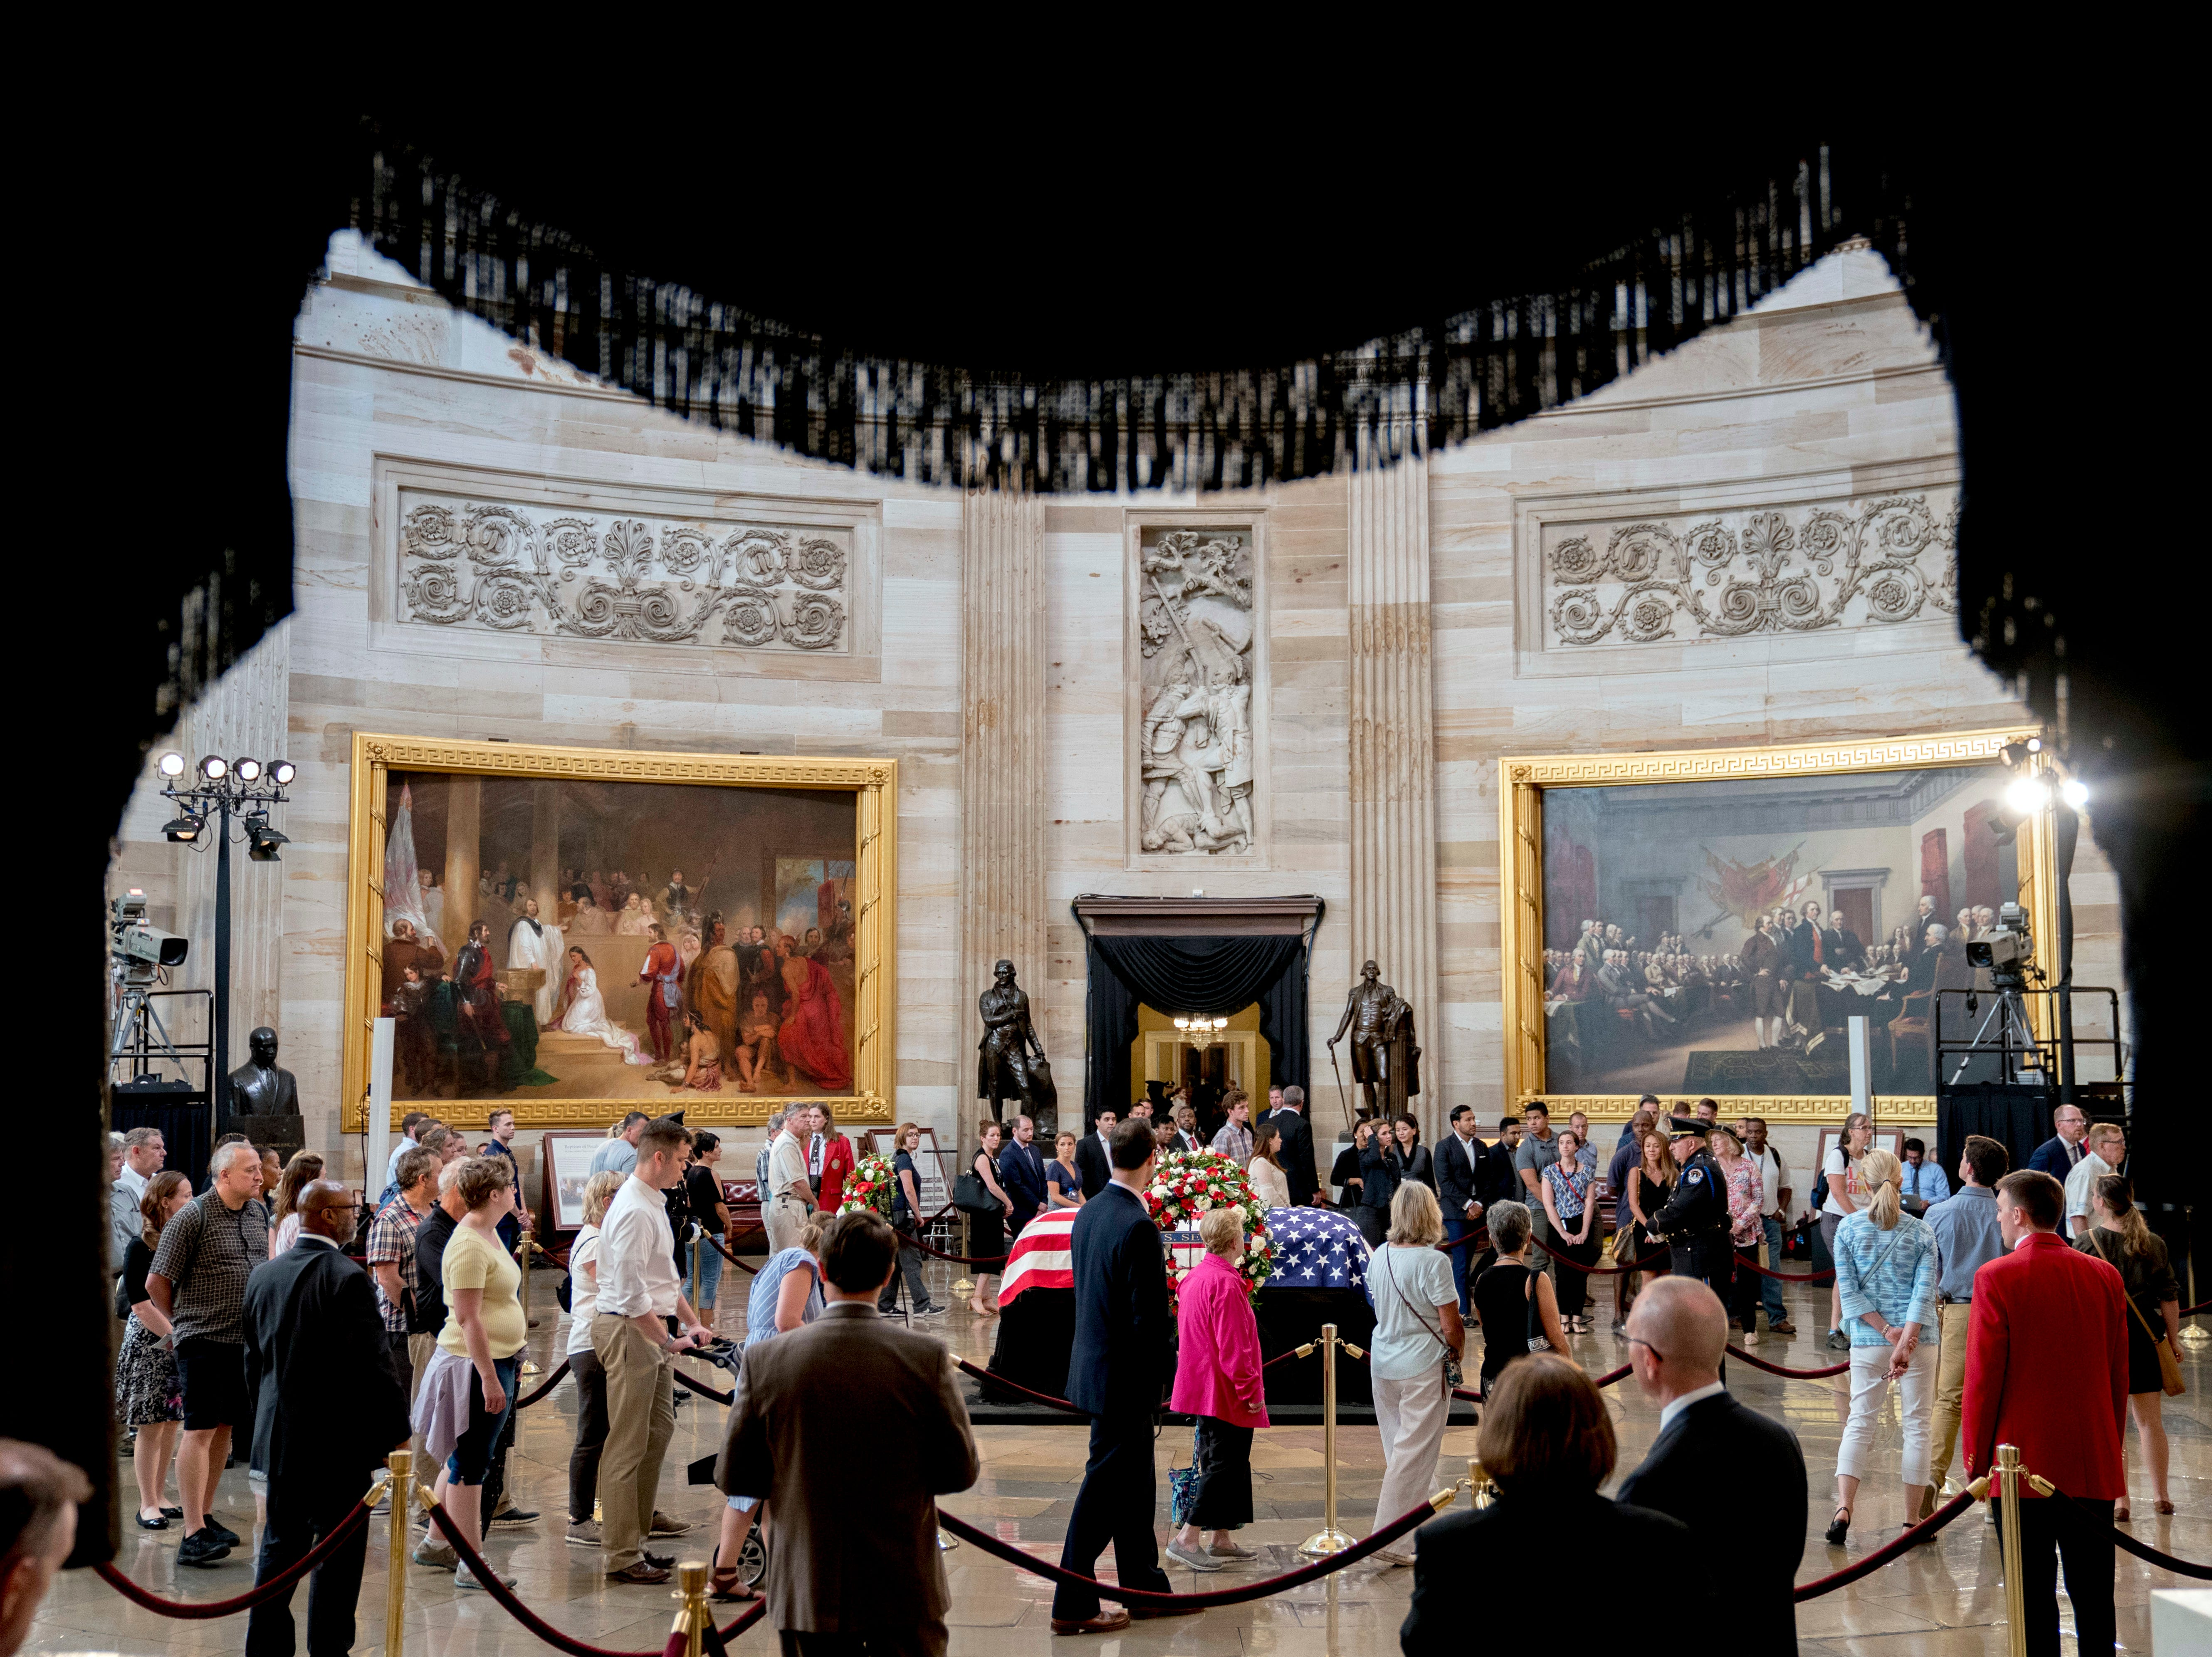 Members of the public come to pay their respects as Sen. John McCain, R-Ariz., lies in state in the Rotunda of the U.S. Capitol, Friday, Aug. 31, 2018, in Washington. (AP Photo/Andrew Harnik)